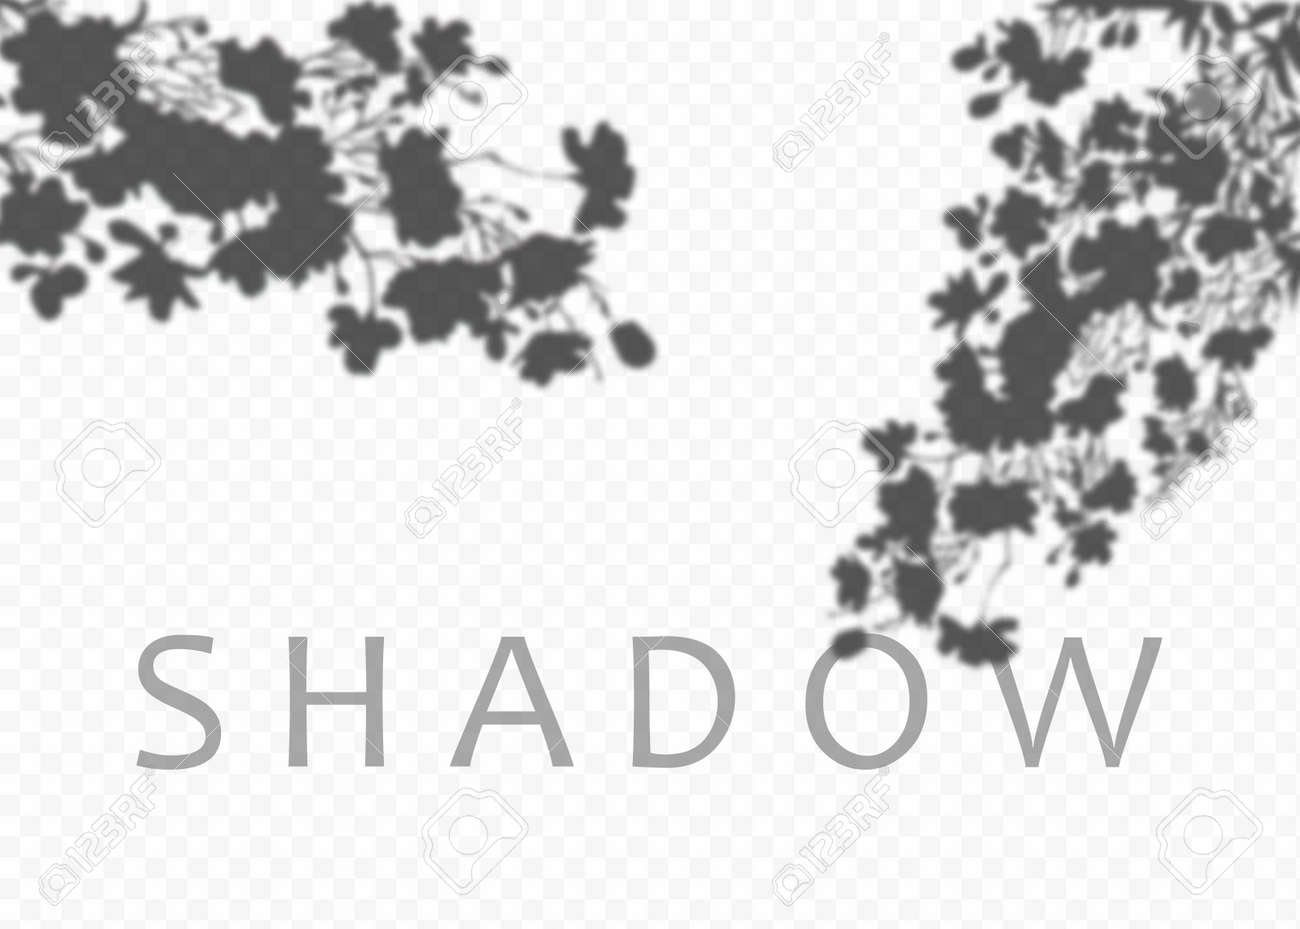 Shadow overlay effect. Transparent soft light and shadows from plant branches, leaves and foliage. Mockup of transparent shadow overlay effect and natural lightning - 169712004